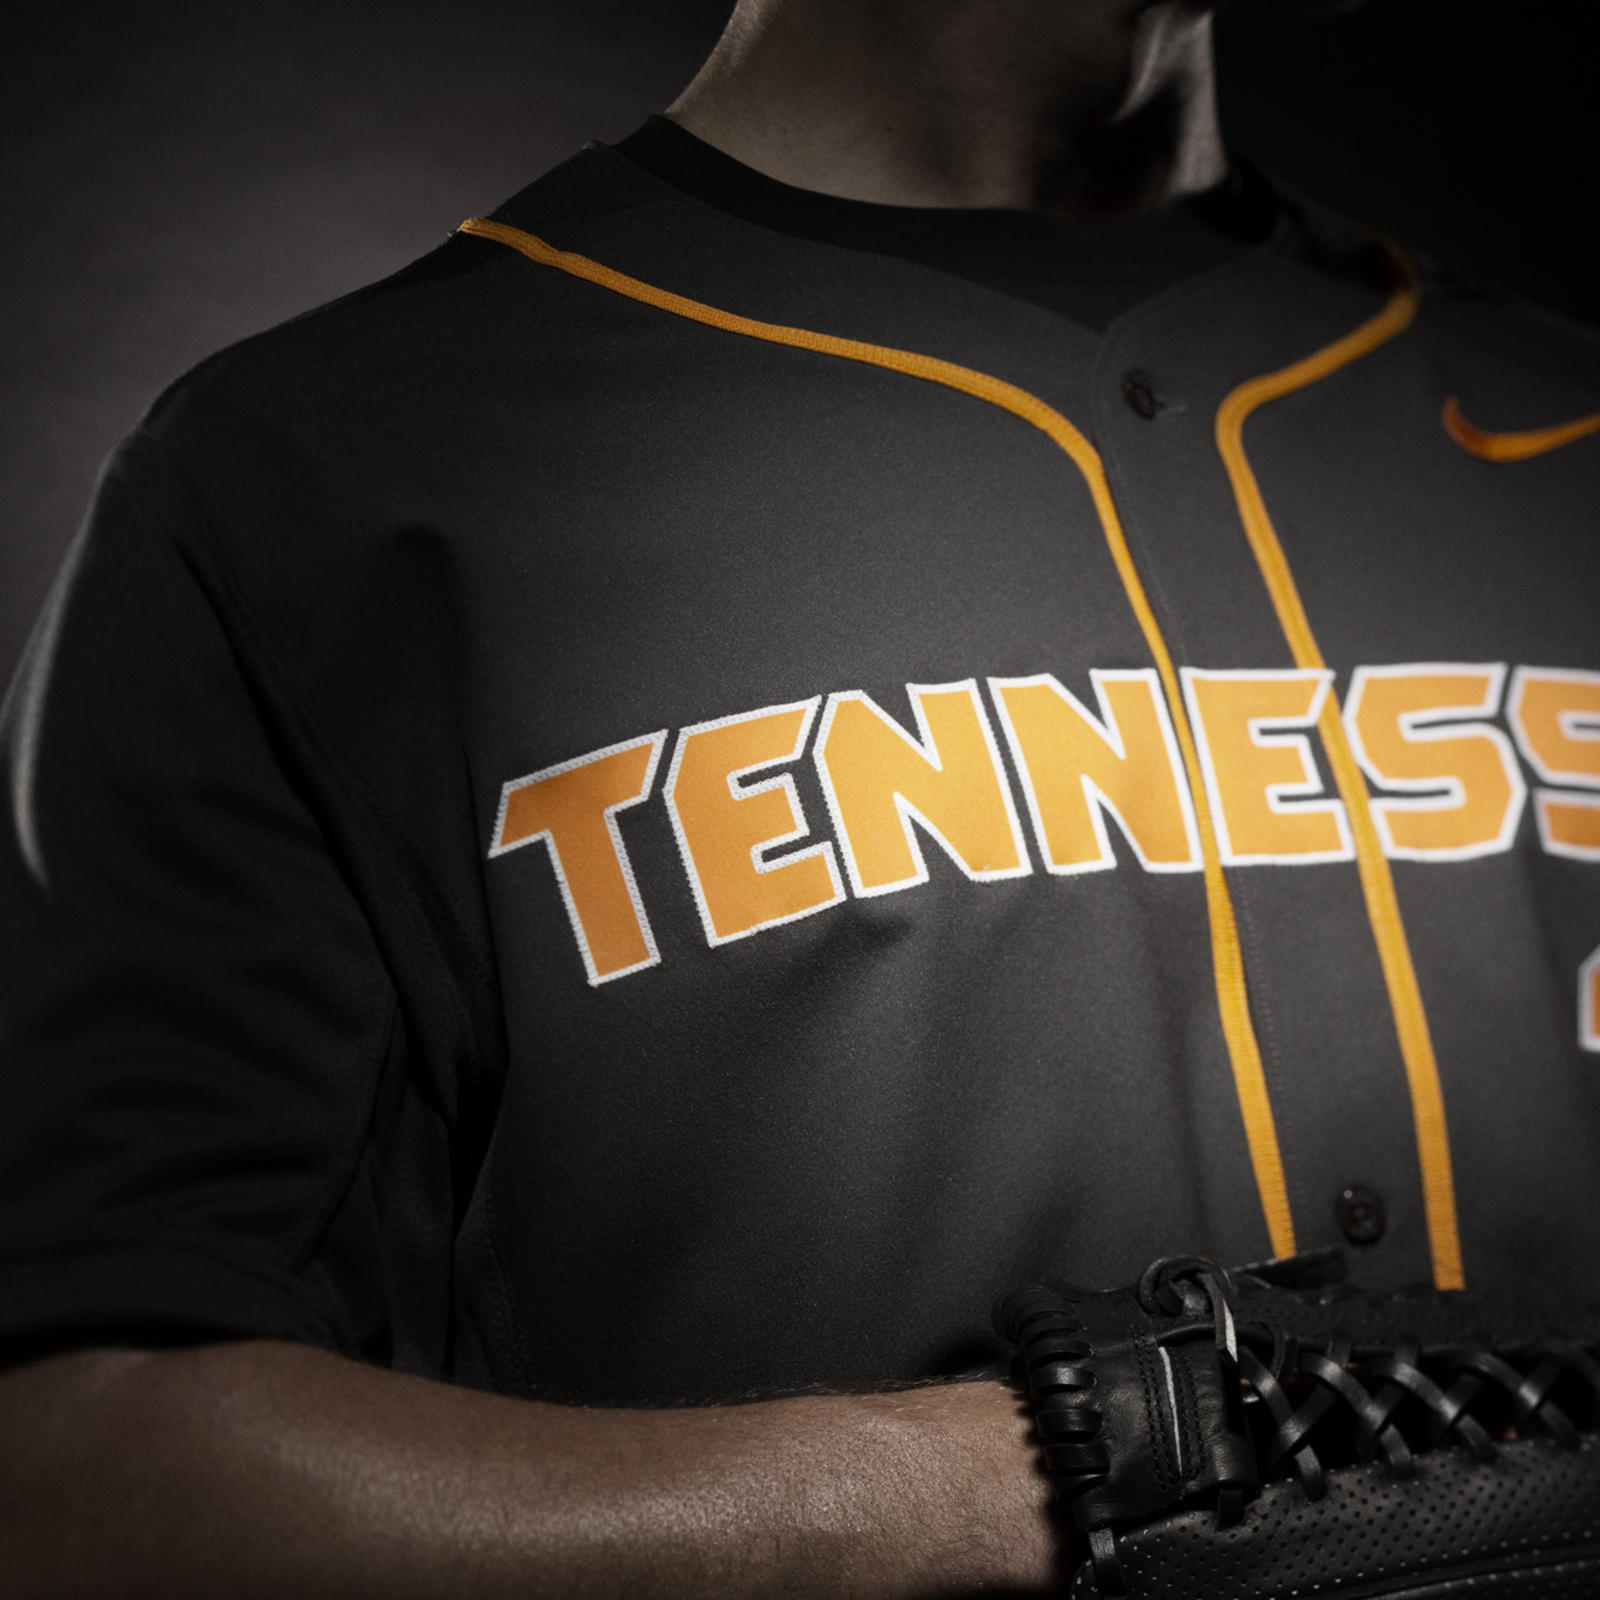 cheap for discount ce4a0 ad6a0 Tennessee Enhances Brand Across All Athletics - Nike News